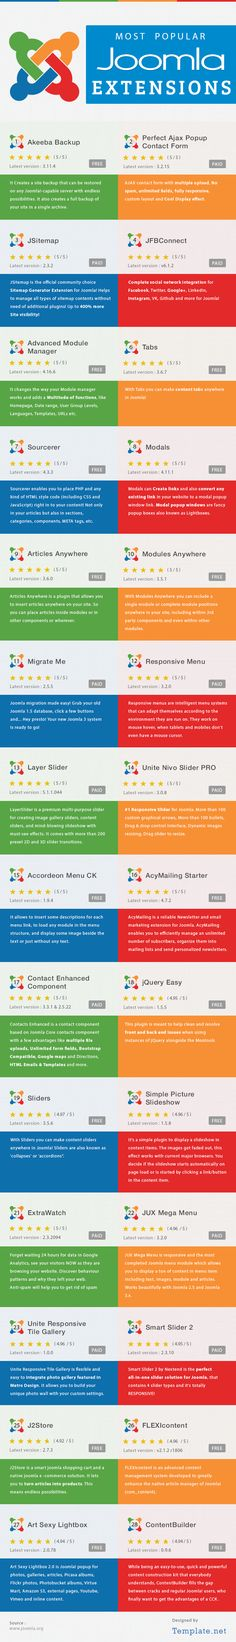 Most Popular Joomla Extensions (Infographic)Templates